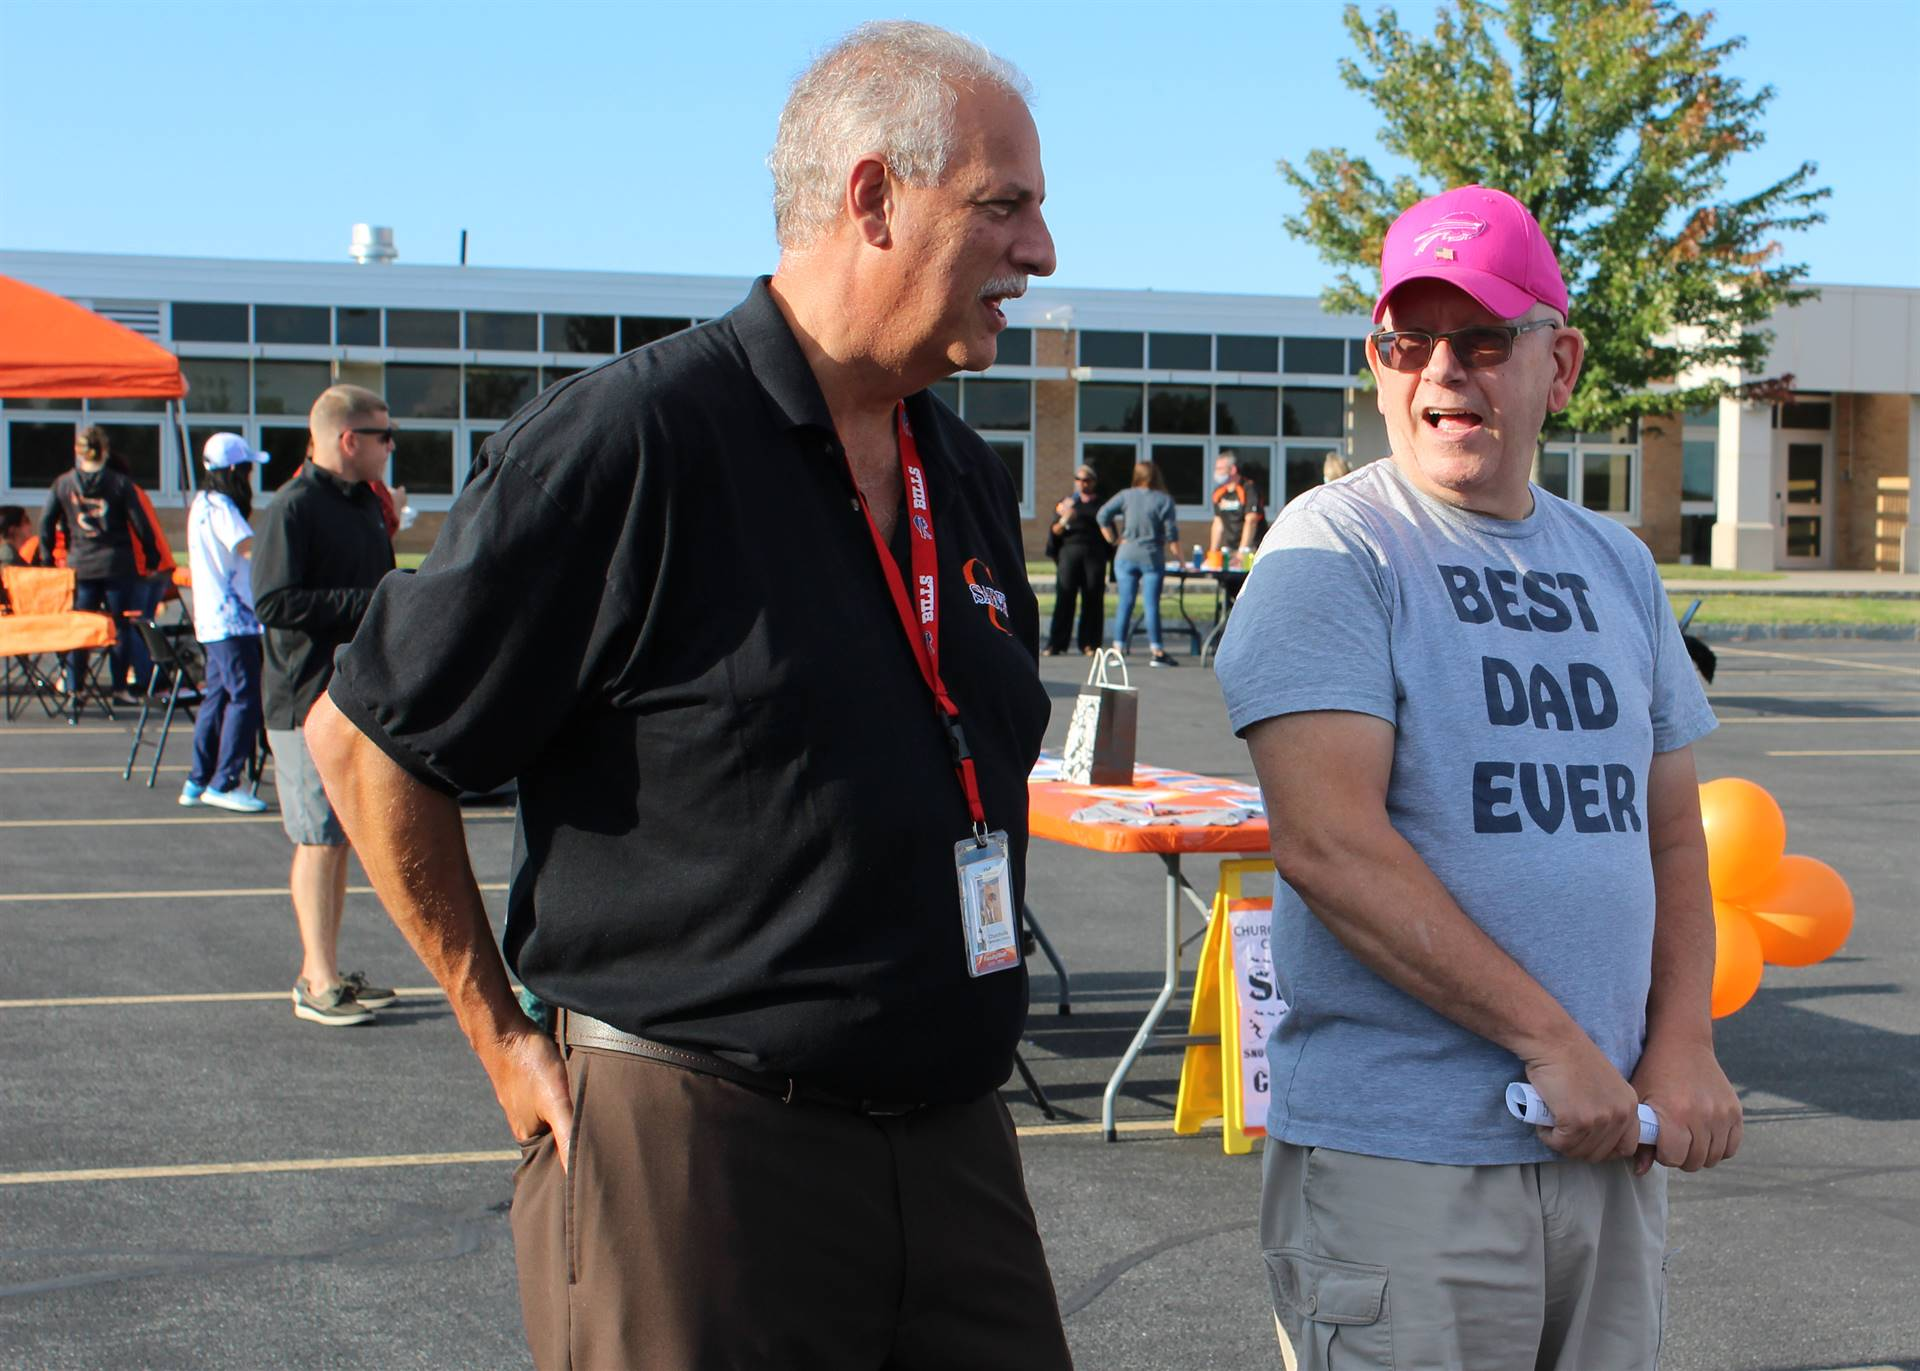 CES principal speaking with a dad